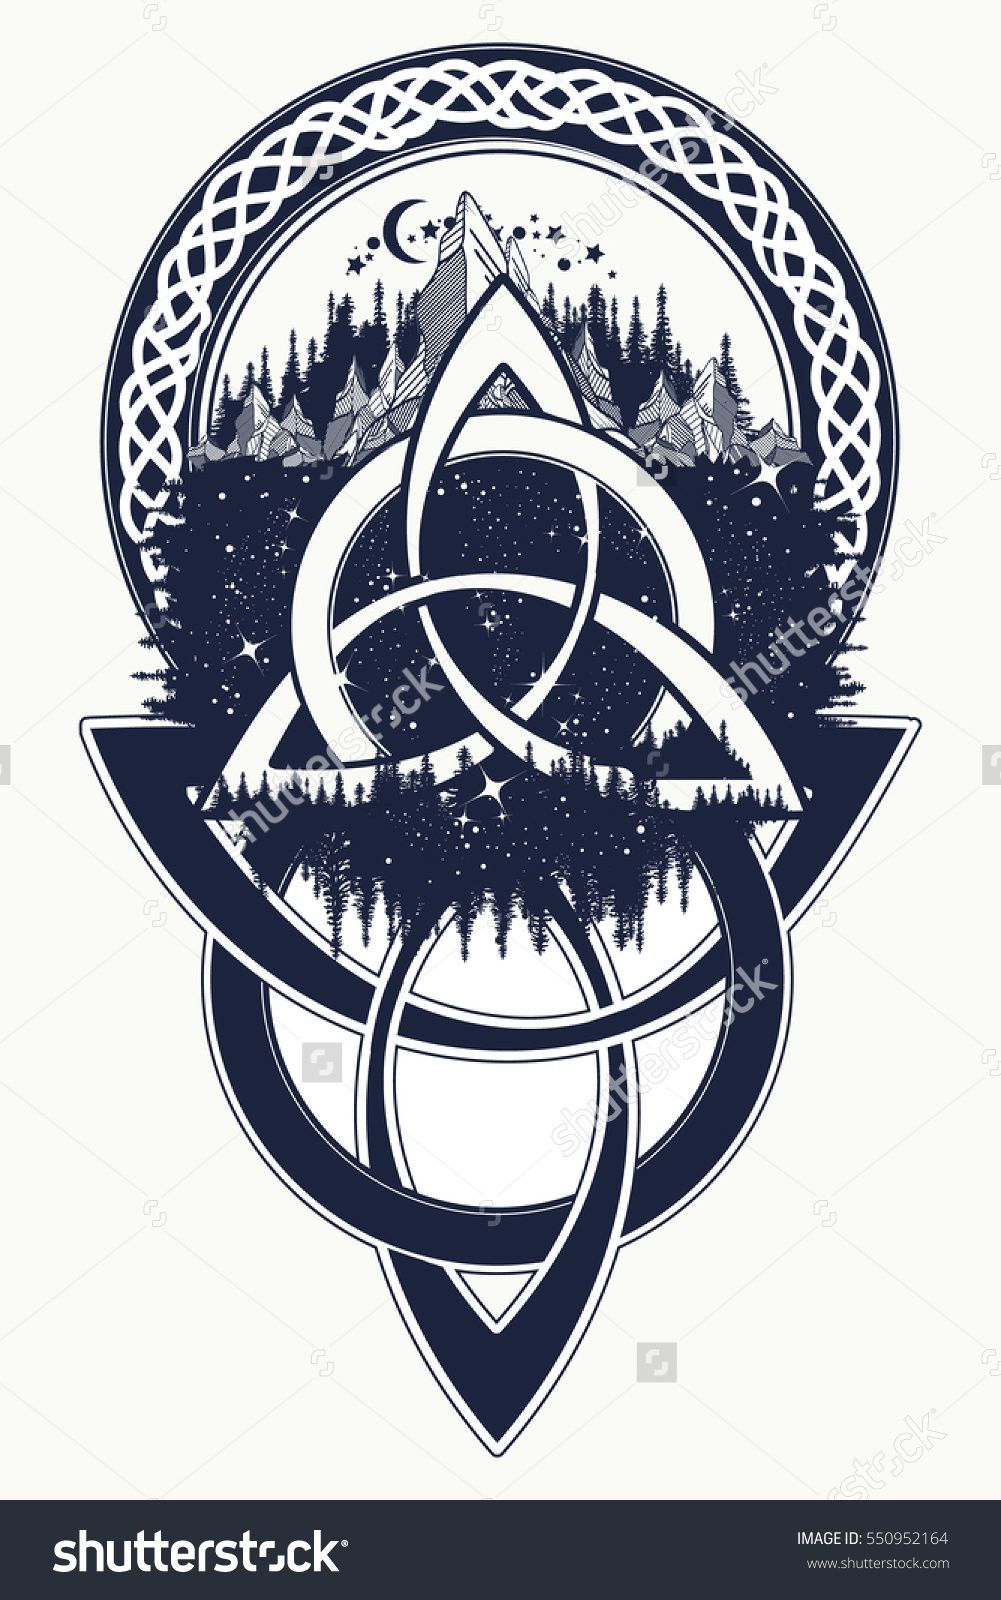 Celtic knot tattoo. Mountain, forest, symbol travel